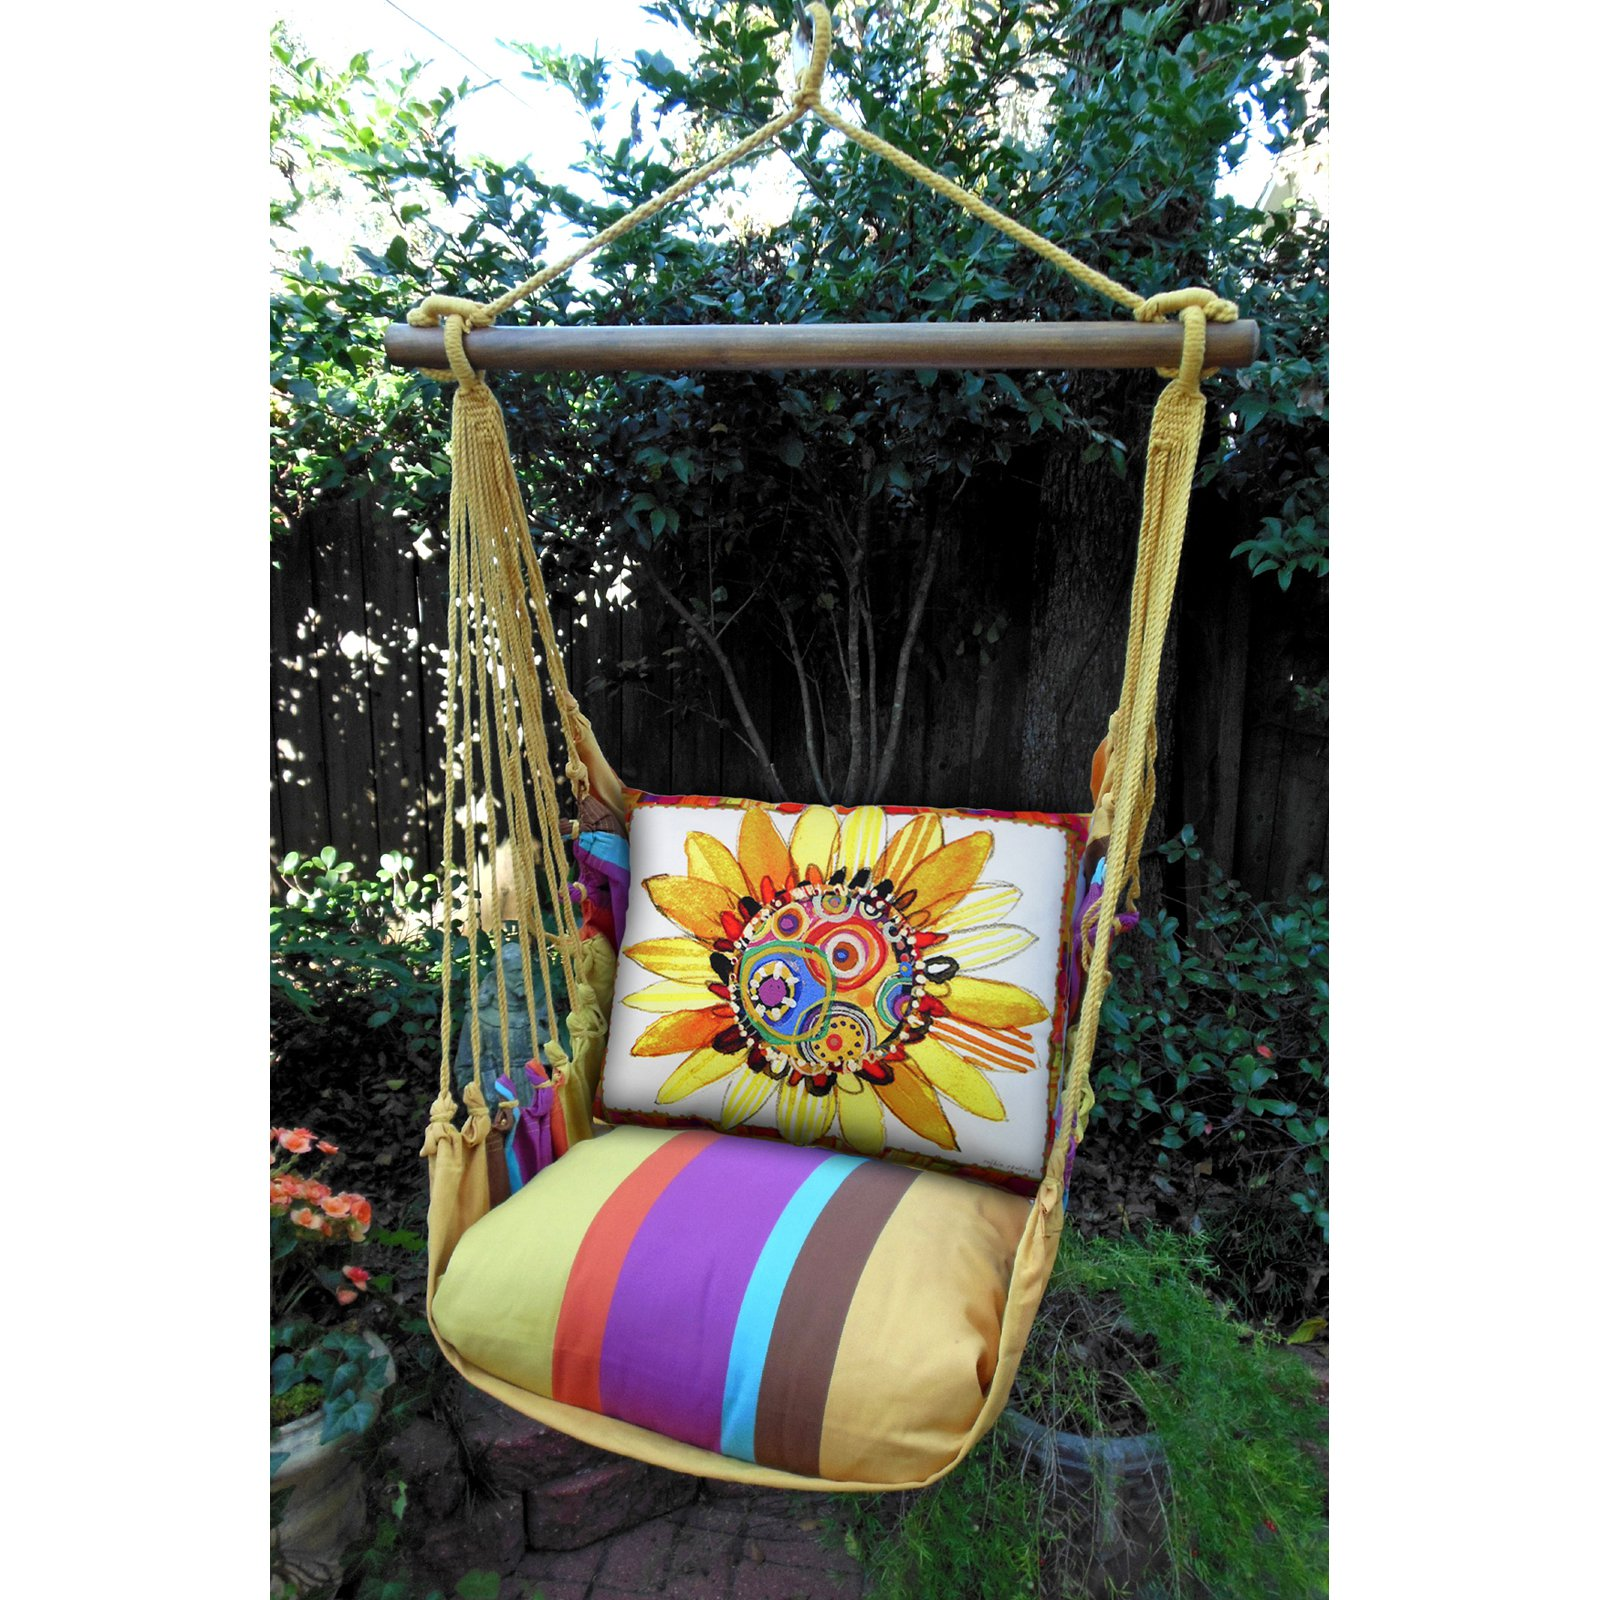 Magnolia Casual Funky Sunflower Hammock Chair & Pillow Set